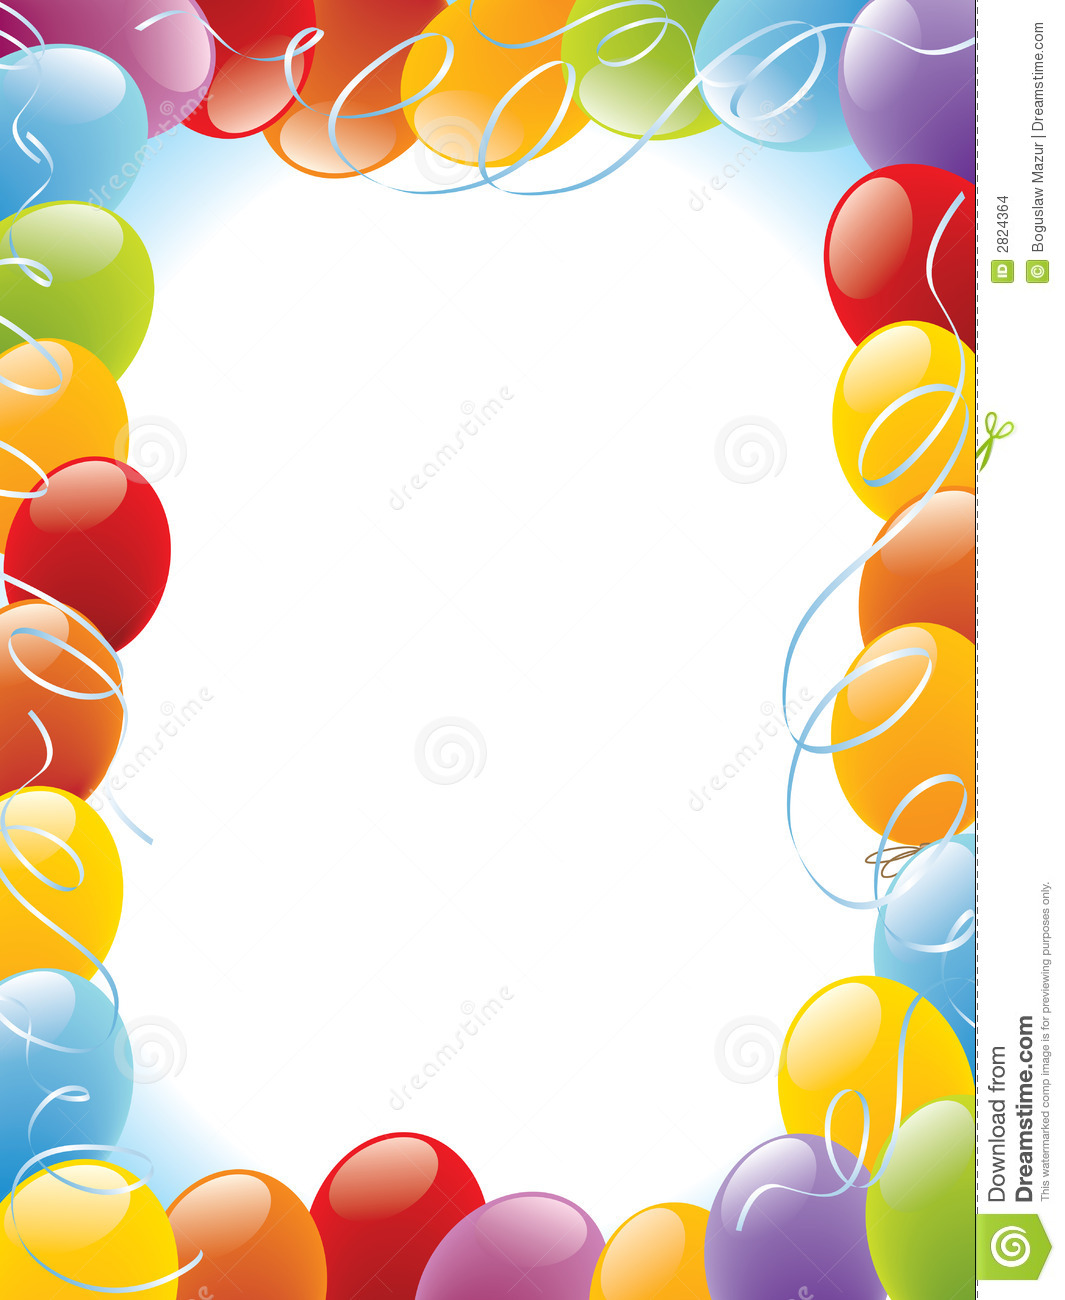 Balloons frame decoration ready for posters and cards.